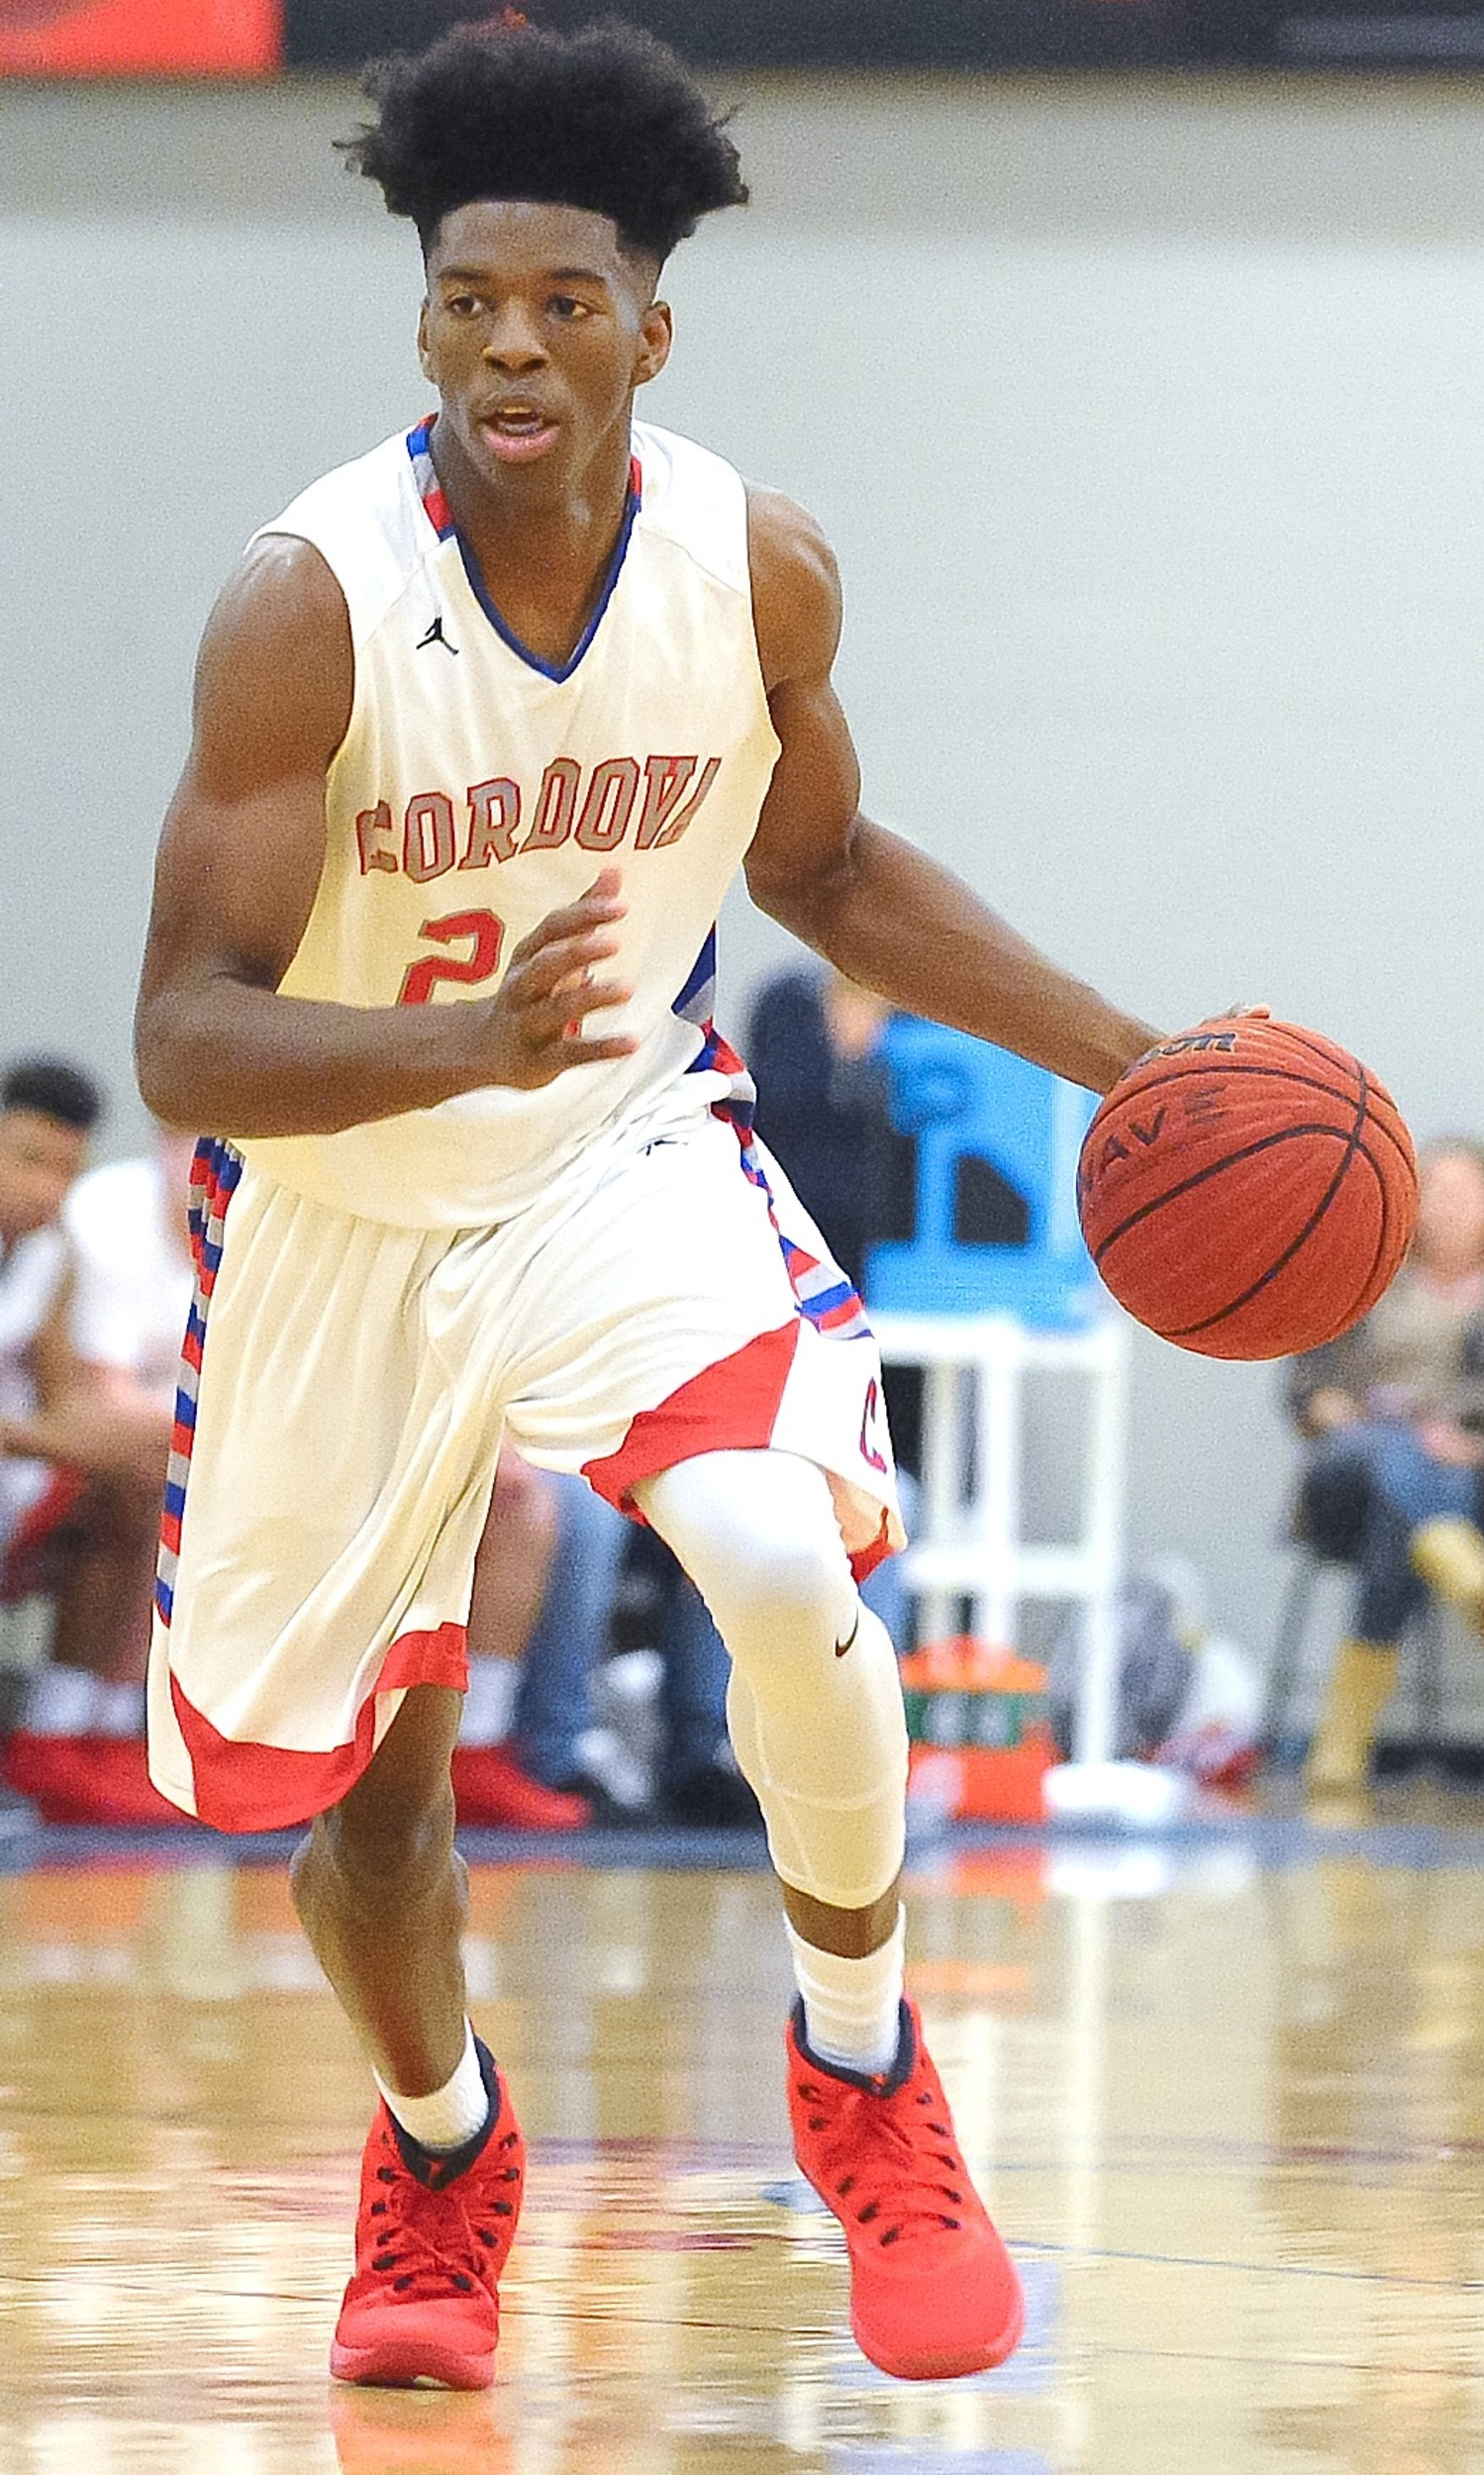 Cordova's Isaac Chatman brings the ball up the court during Tuesday's win over Dora. The Blue Devils moved up one spot to No. 3 in Class 4A in the ASWA poll released Wednesday night.